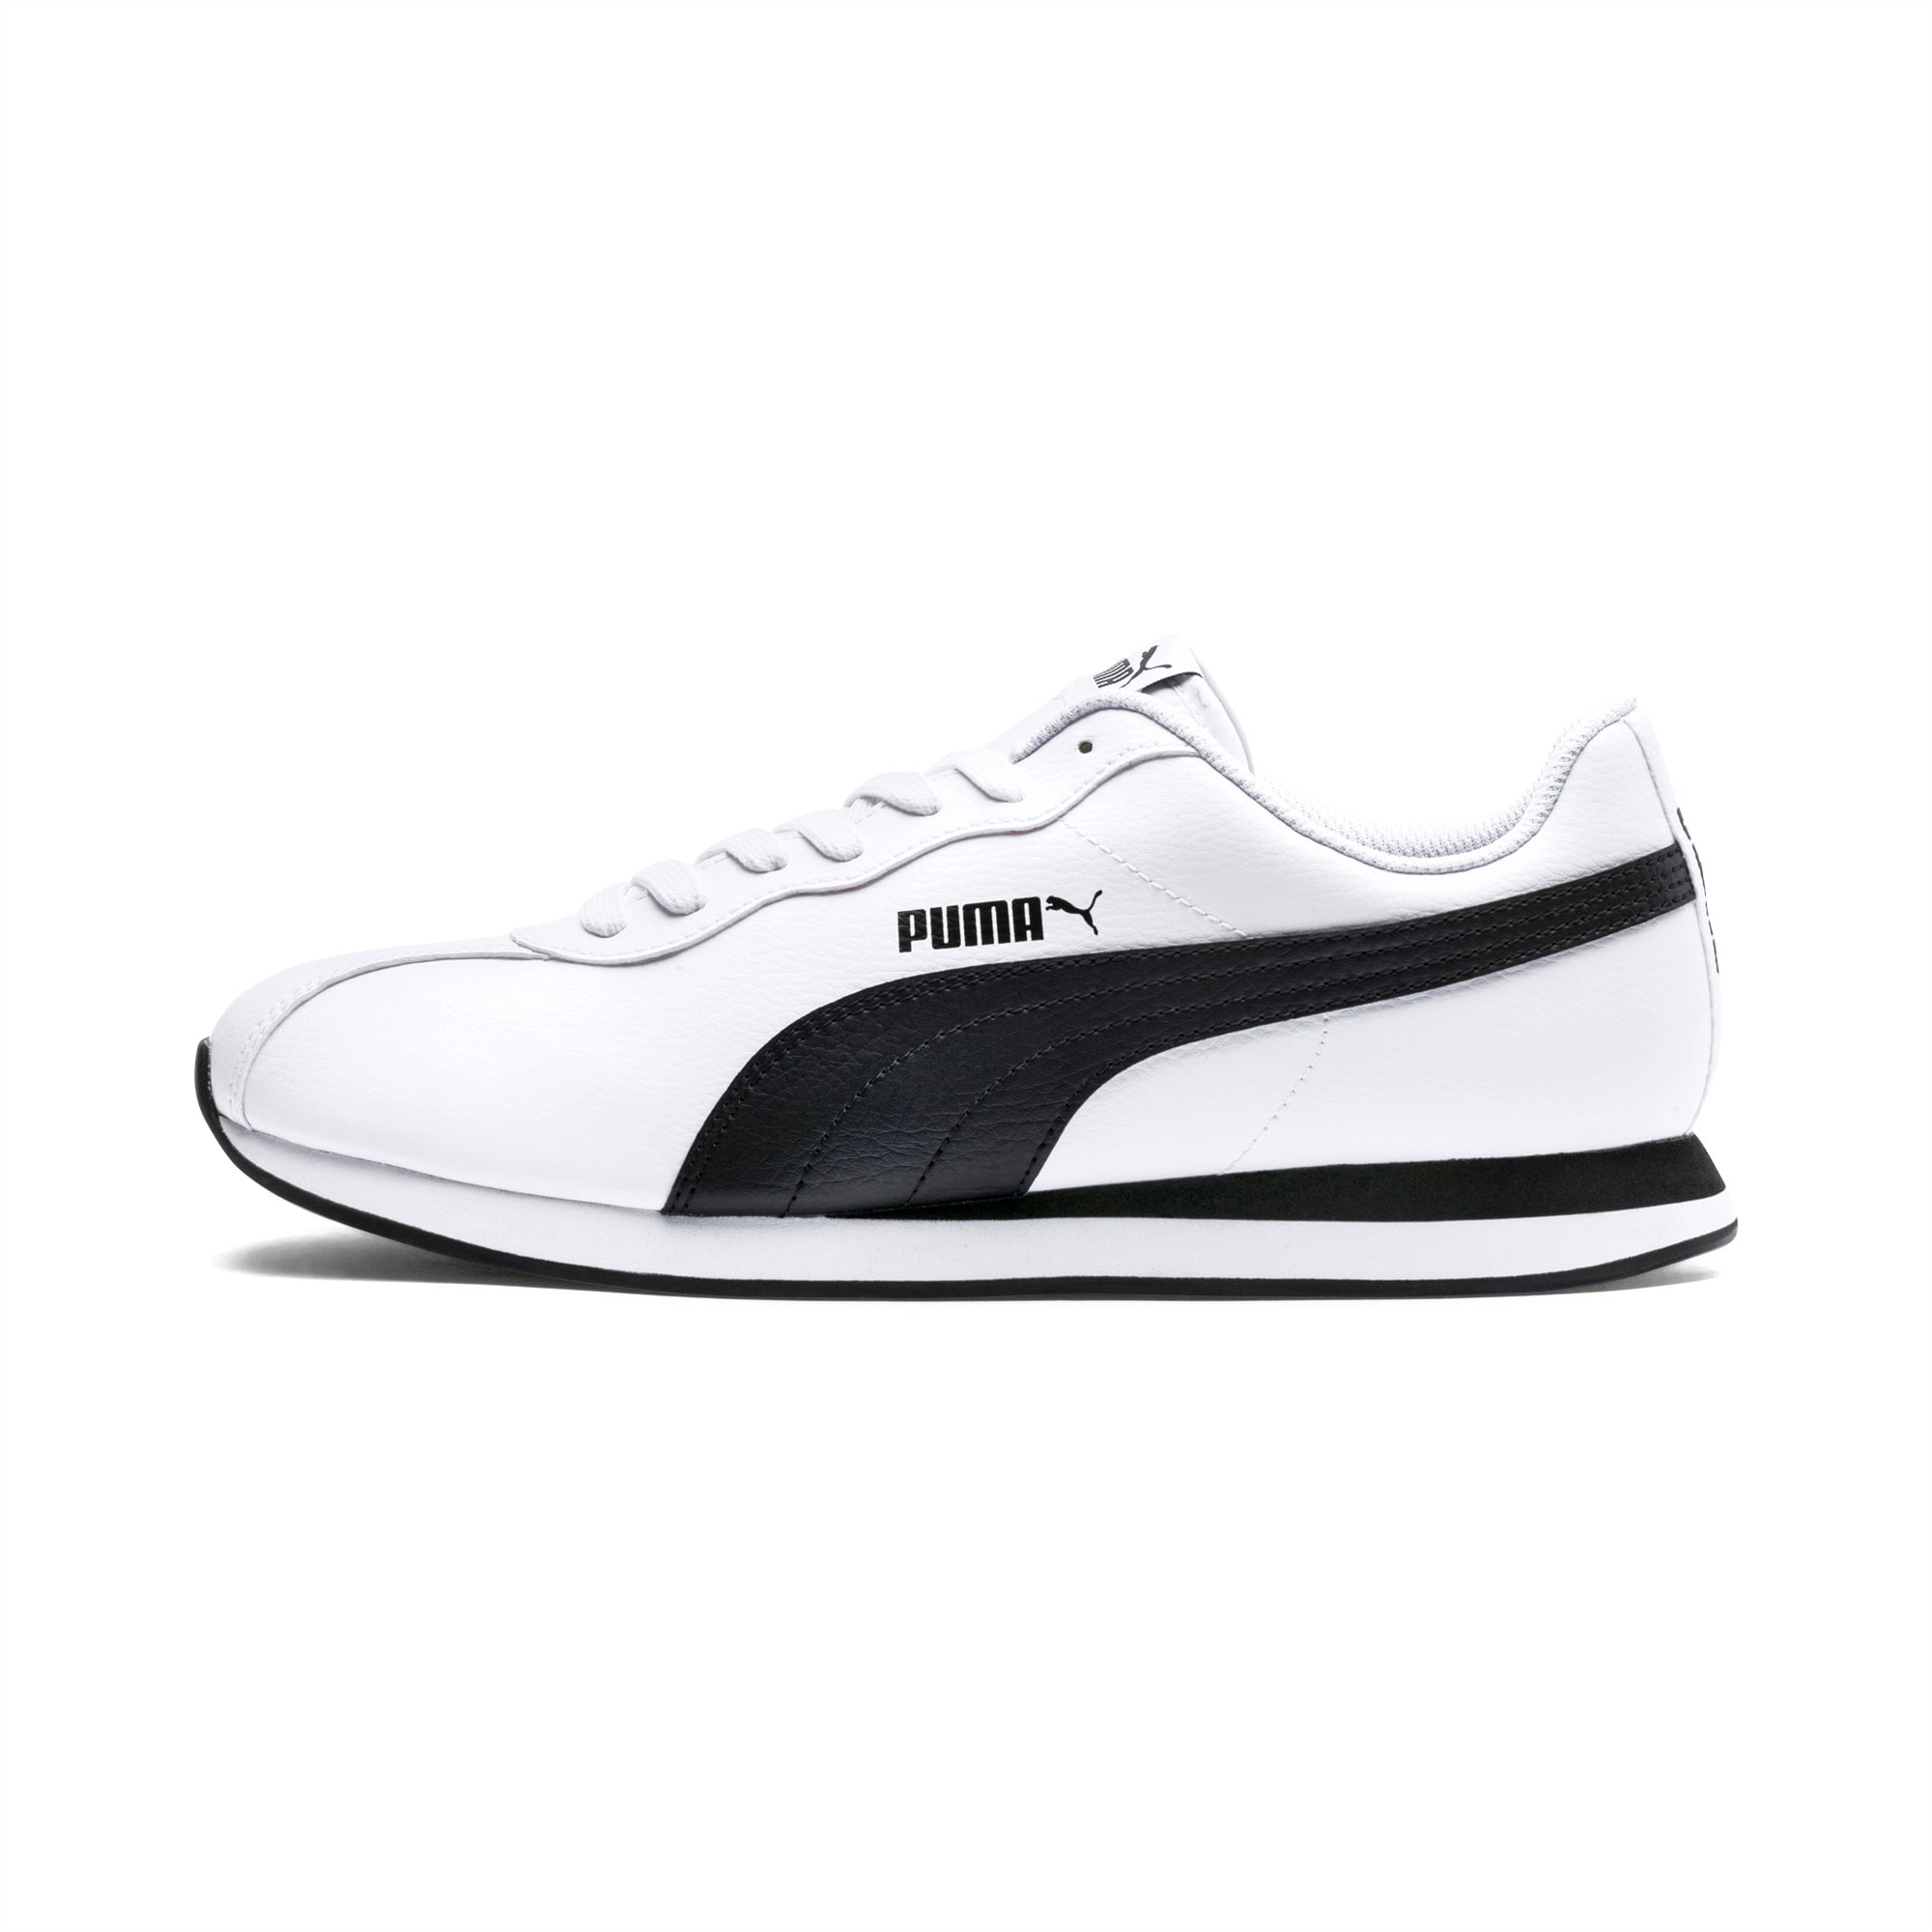 Turin II Men's Sneakers